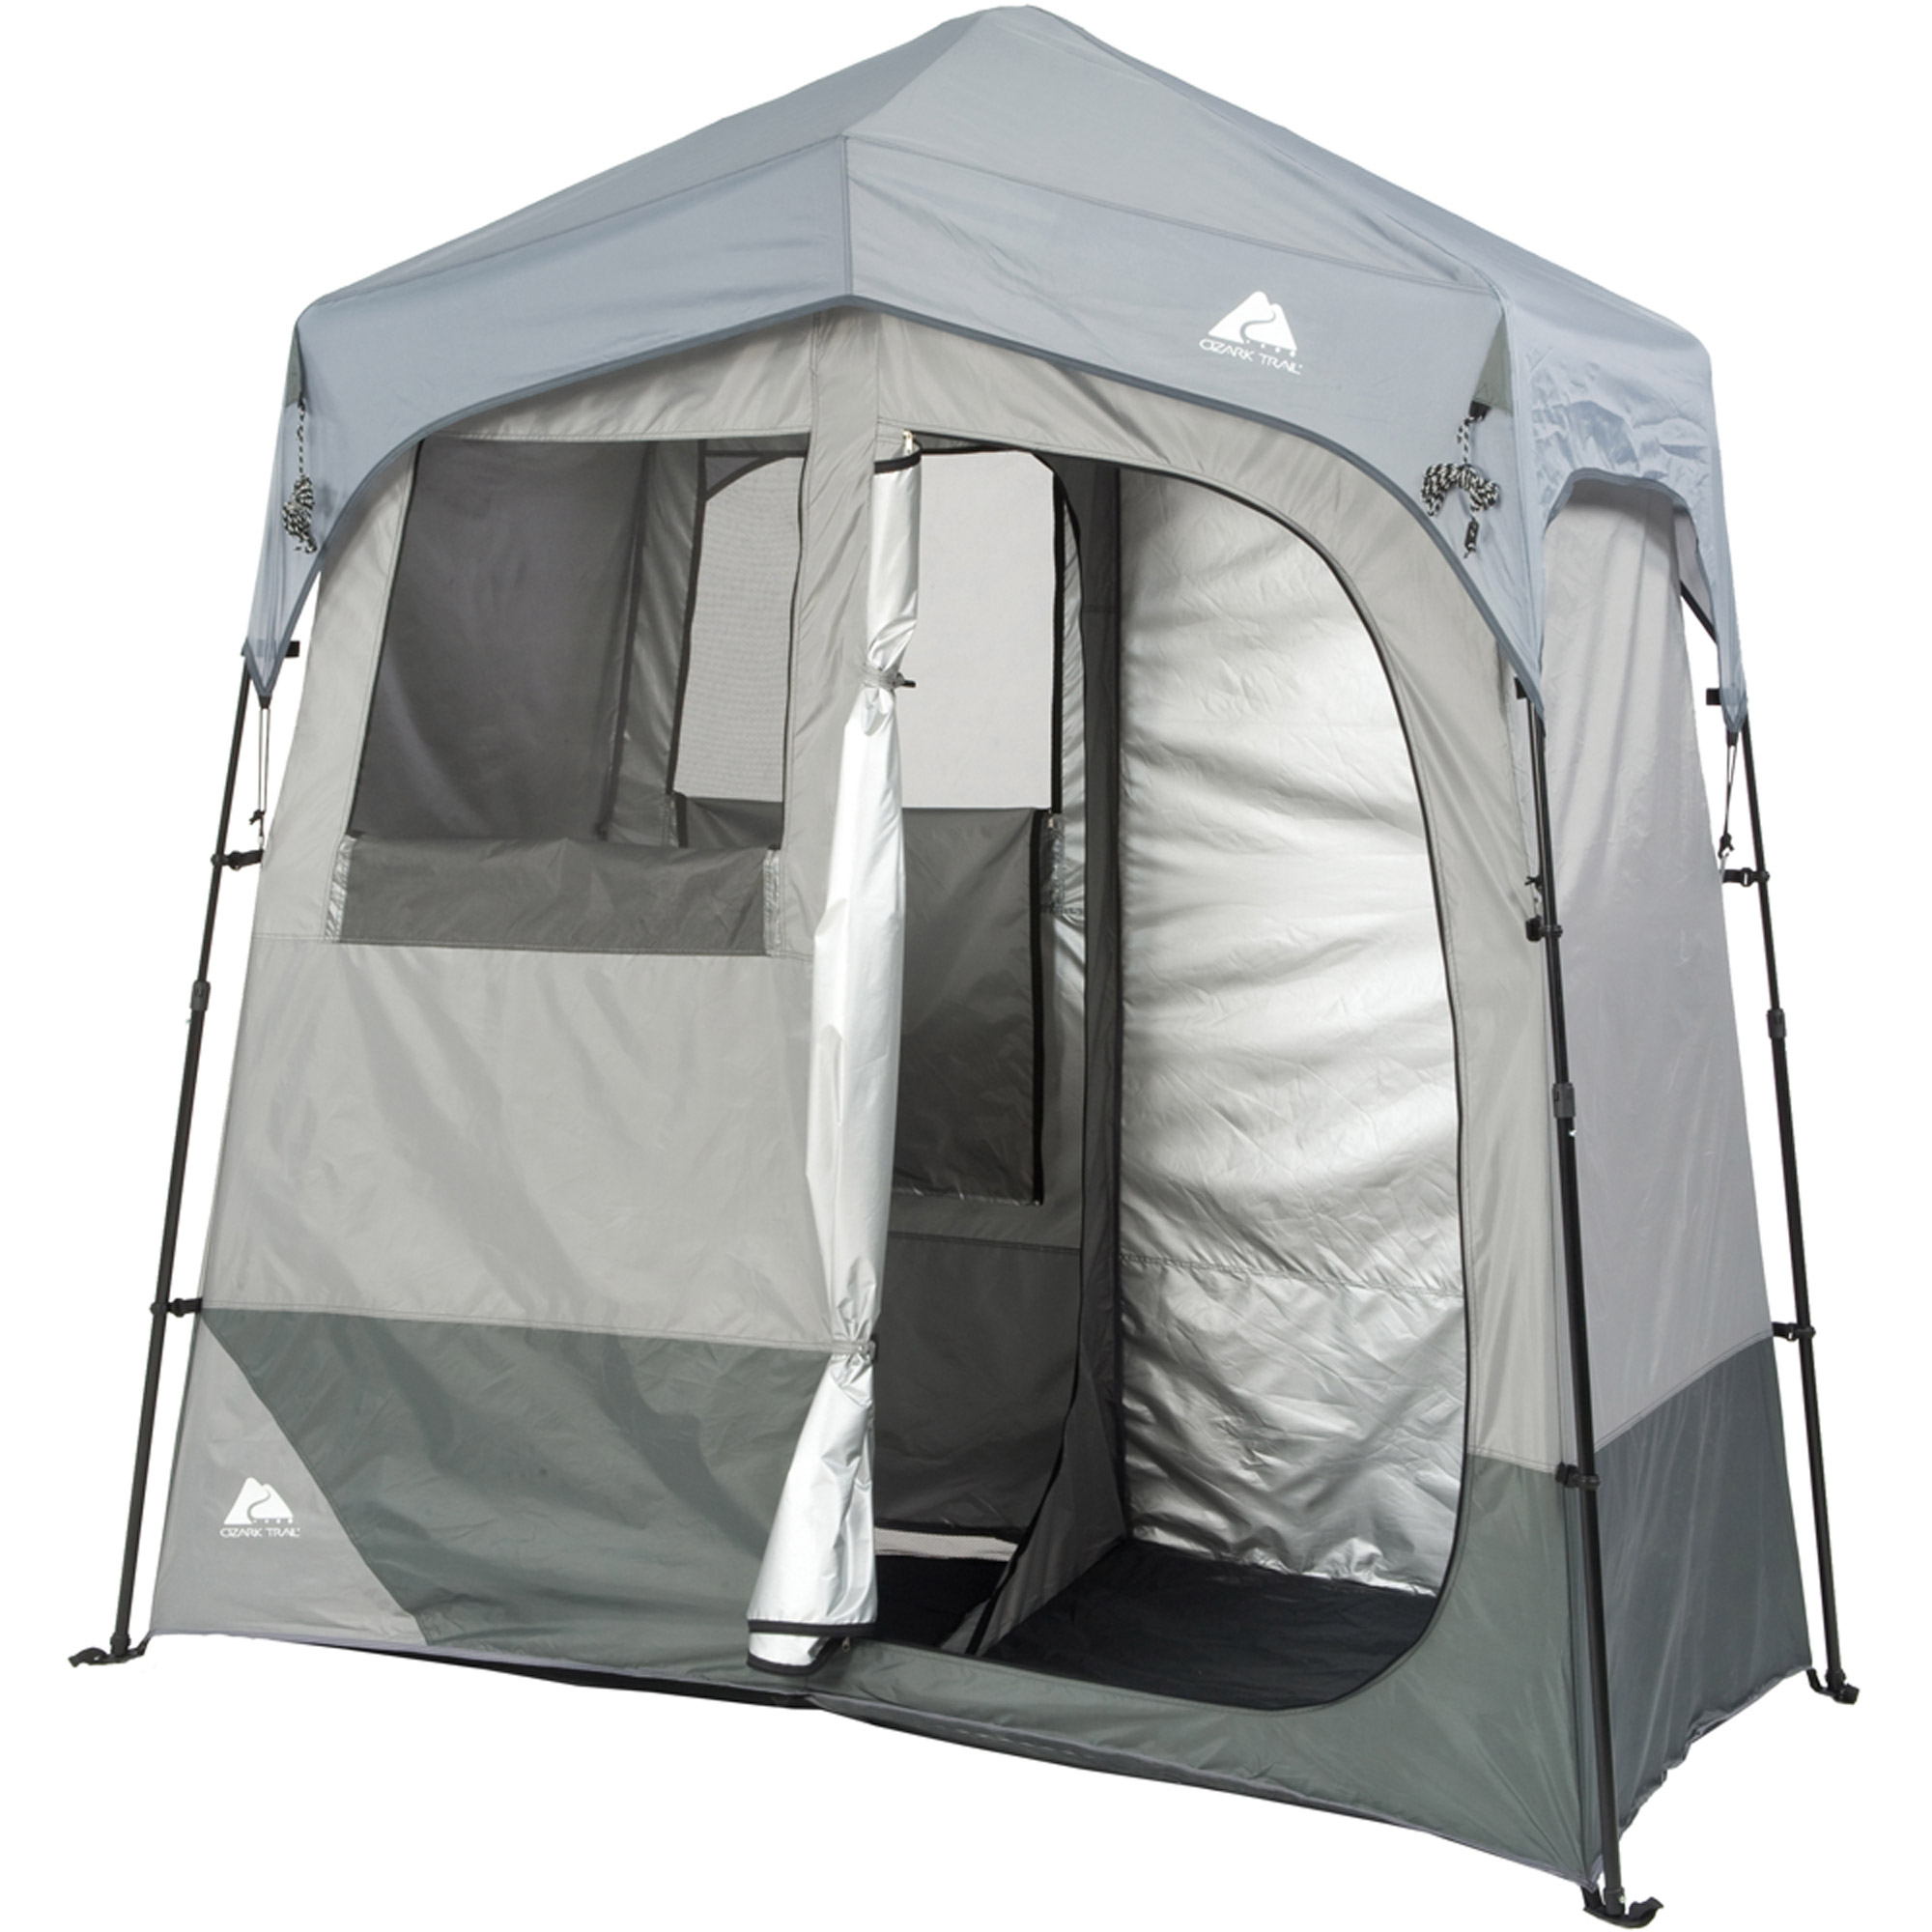 Ozark Trail 2-Room Instant Shower/Utility Shelter ...